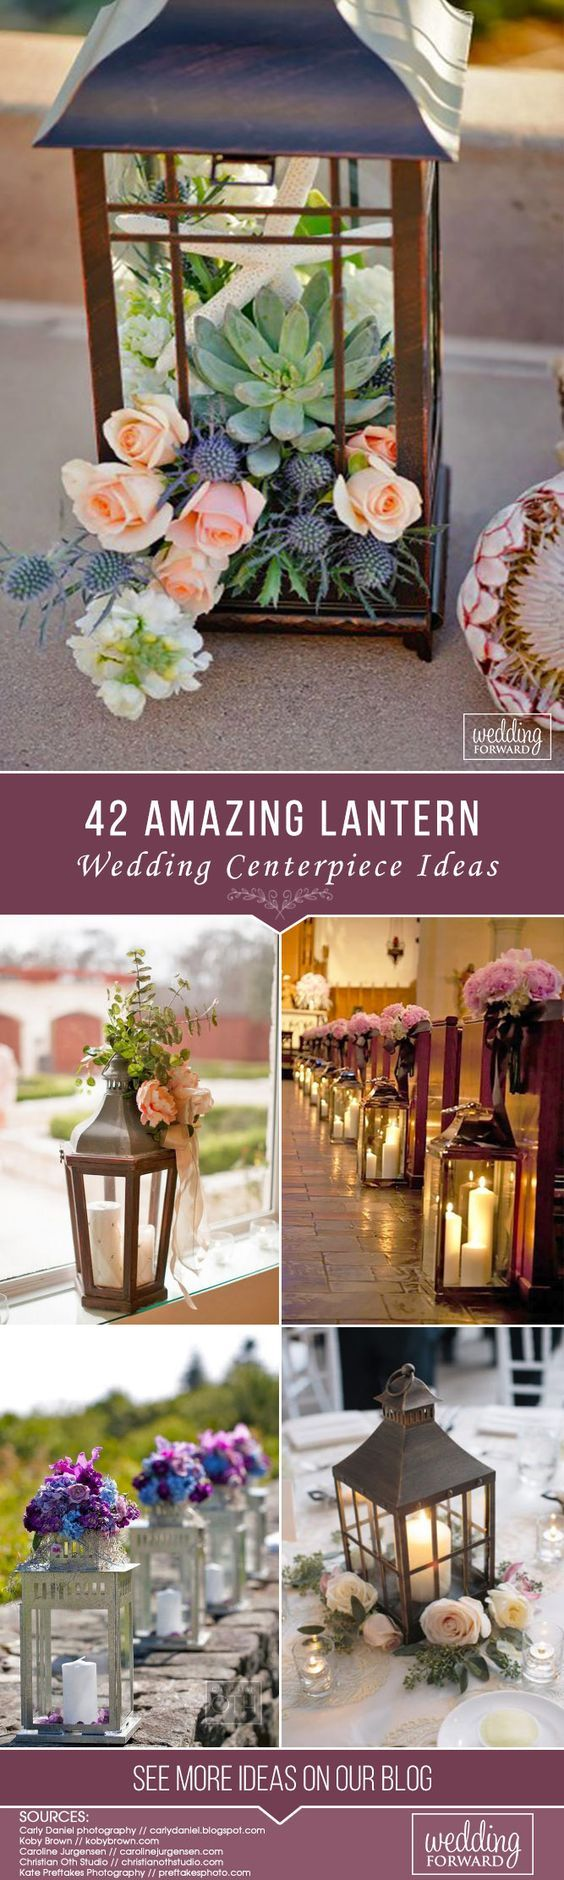 how to decorate a tent for a wedding 4906 best wedding decorations images on 4906